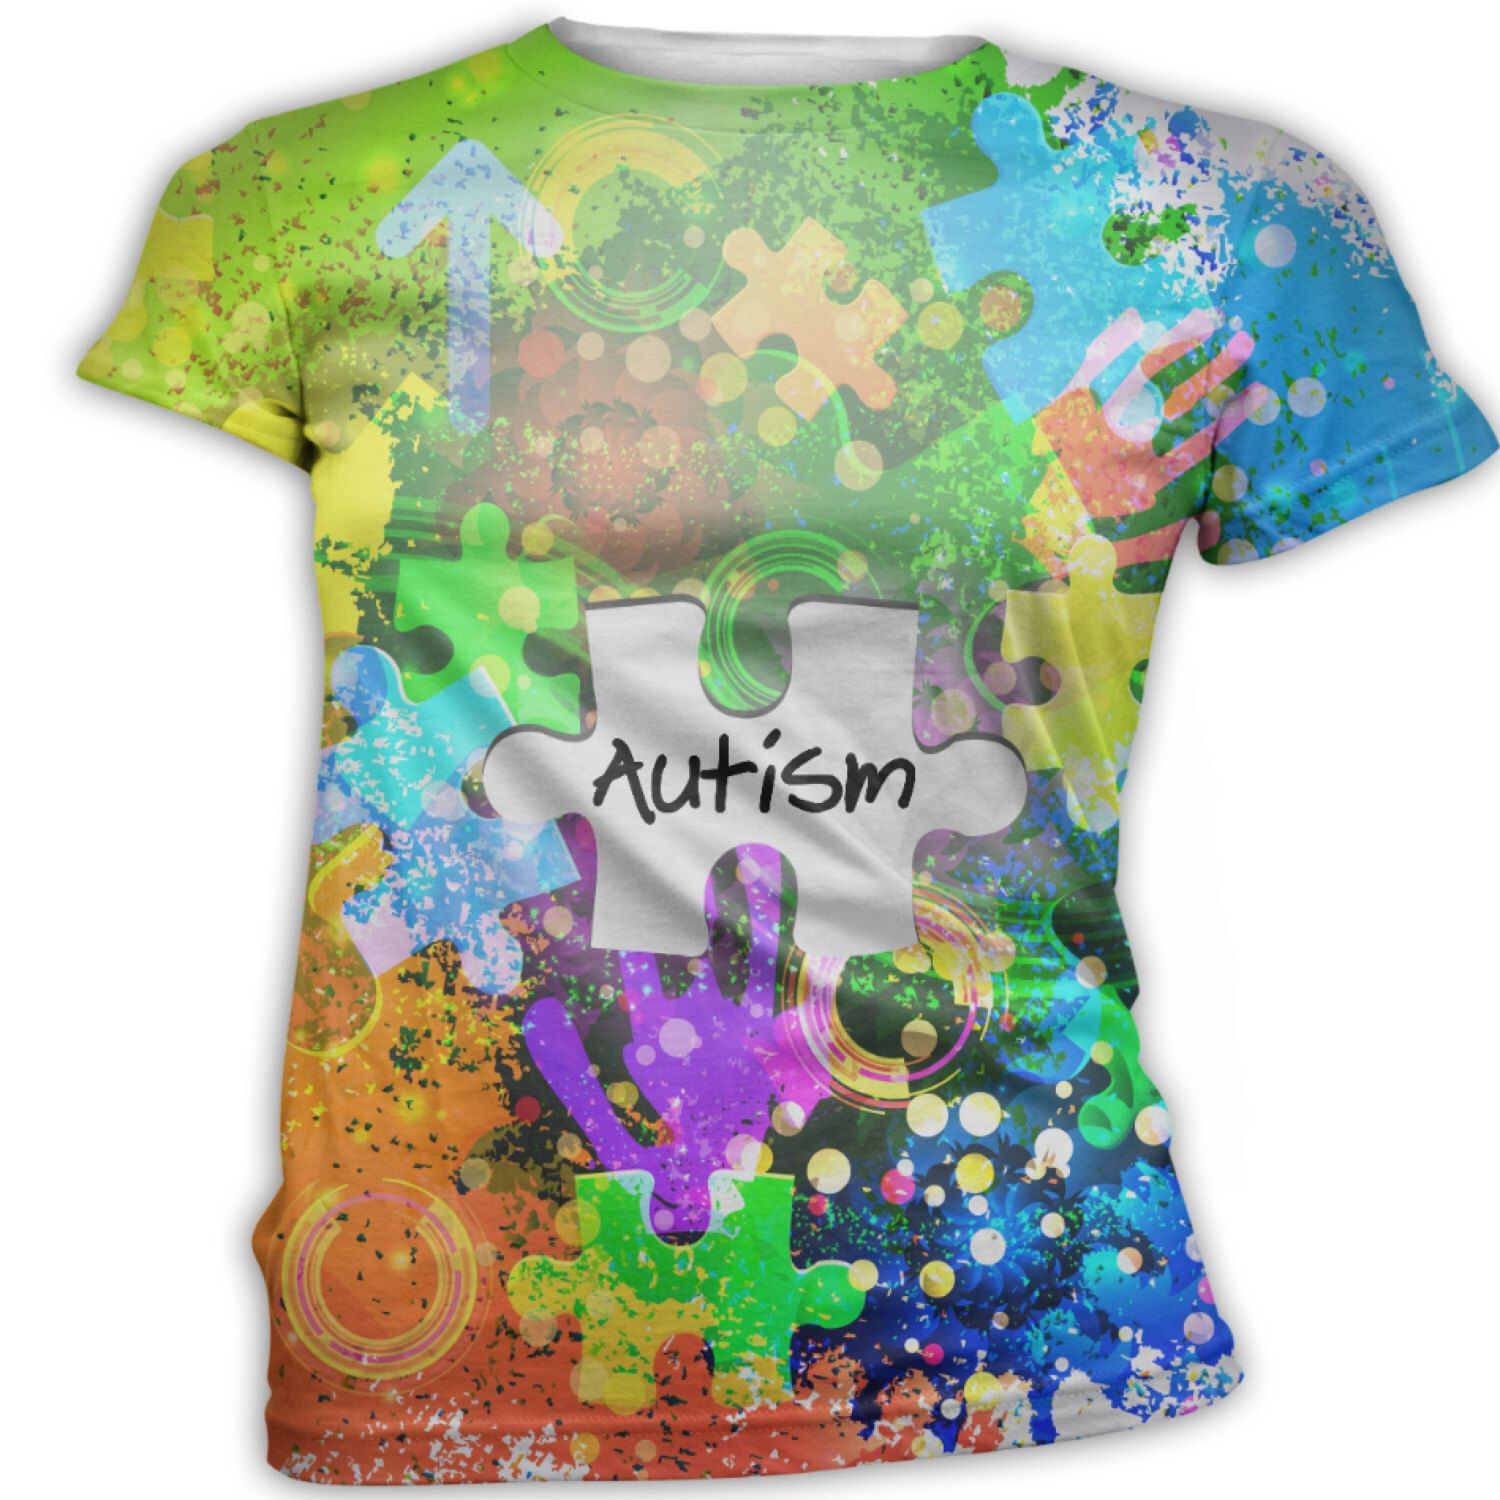 Pin By Erika Lips On My Style Autism Autism Awareness Autism Shirts